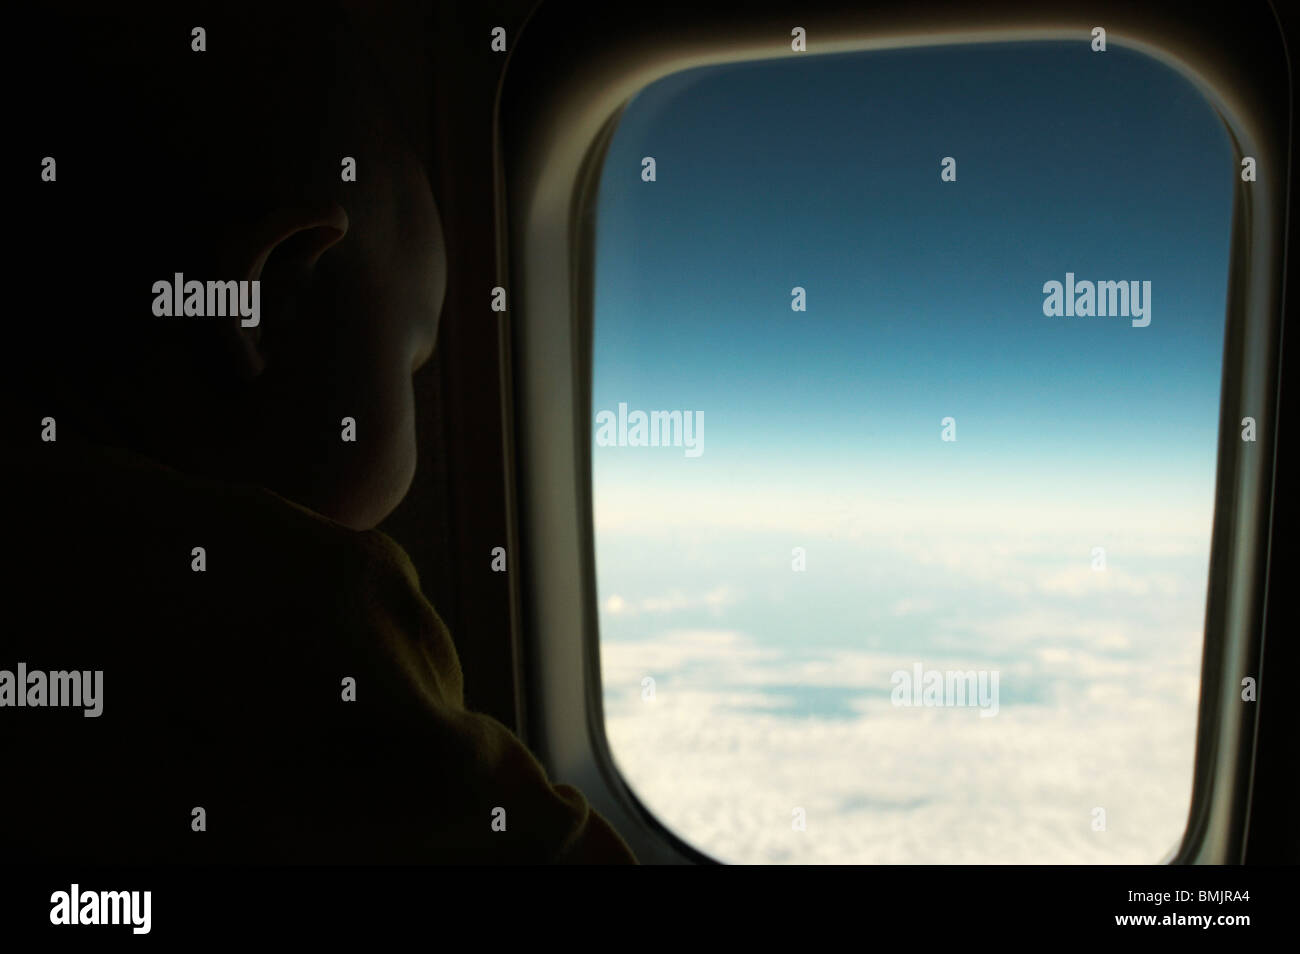 A baby looking out of a window in a plane - Stock Image